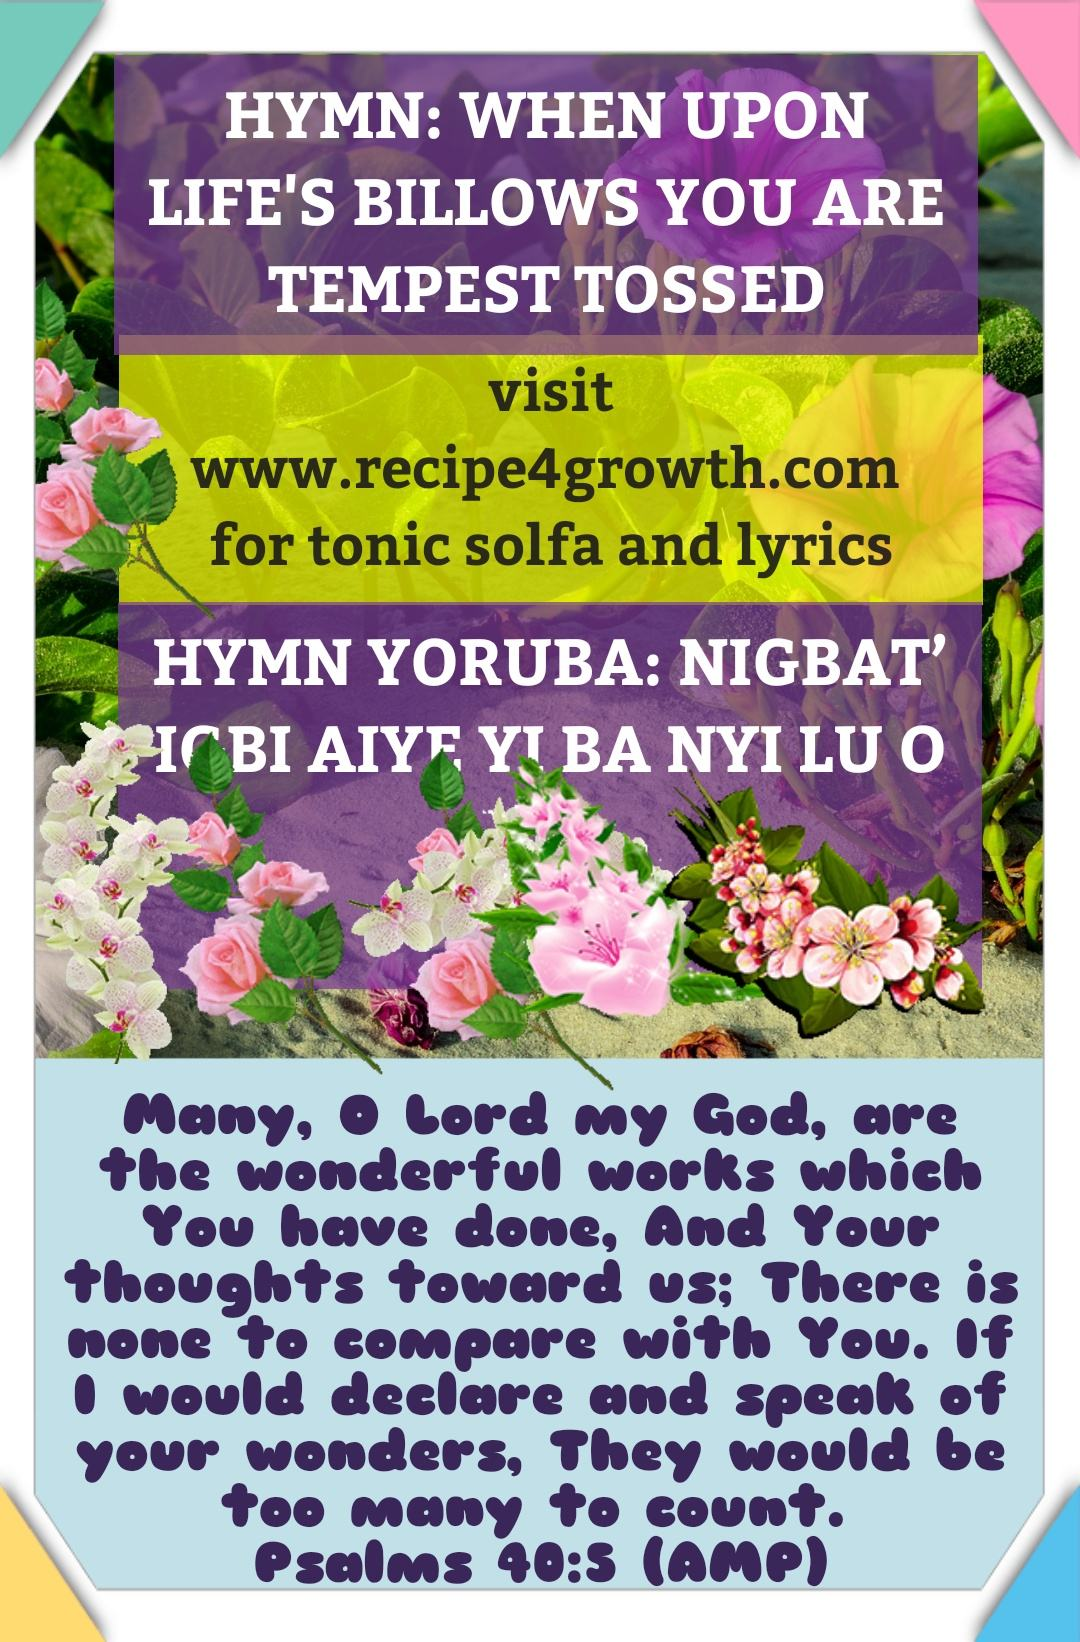 WHEN UPON LIFE'S BILLOWS YOUR ARE TEMPEST TOSSED